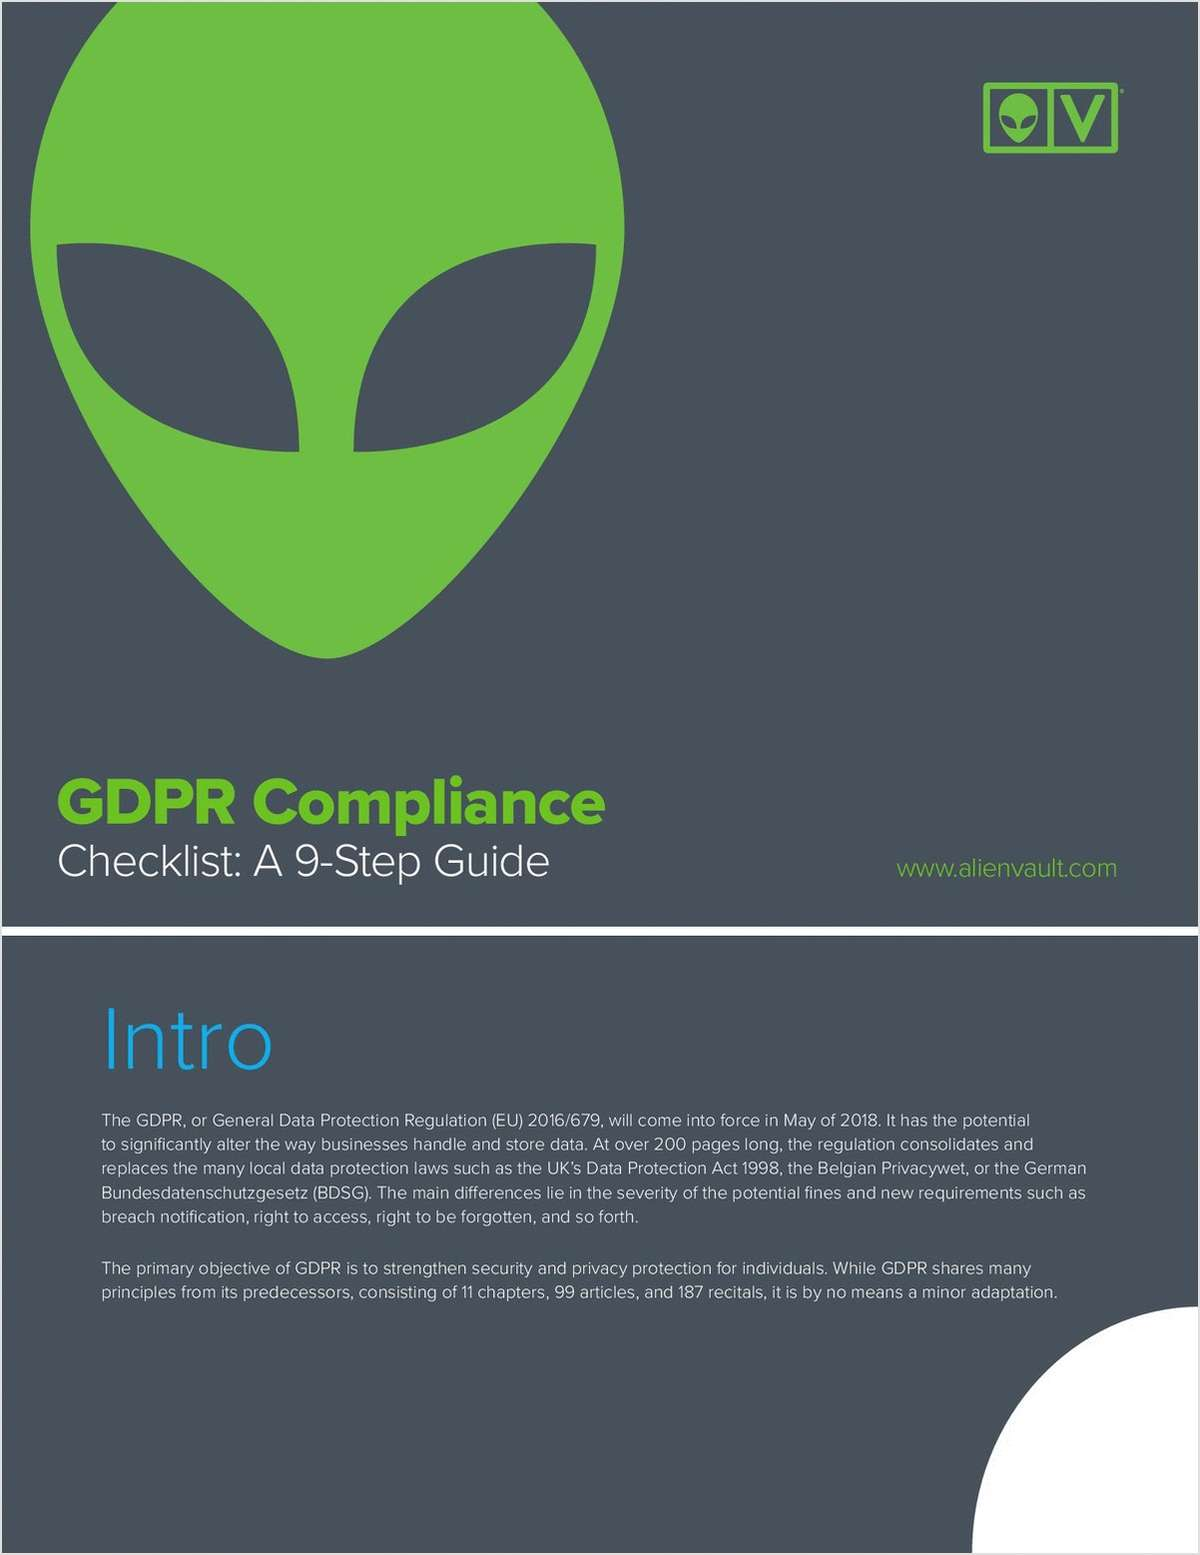 GDPR Compliance Checklist: A 9-Step Guide